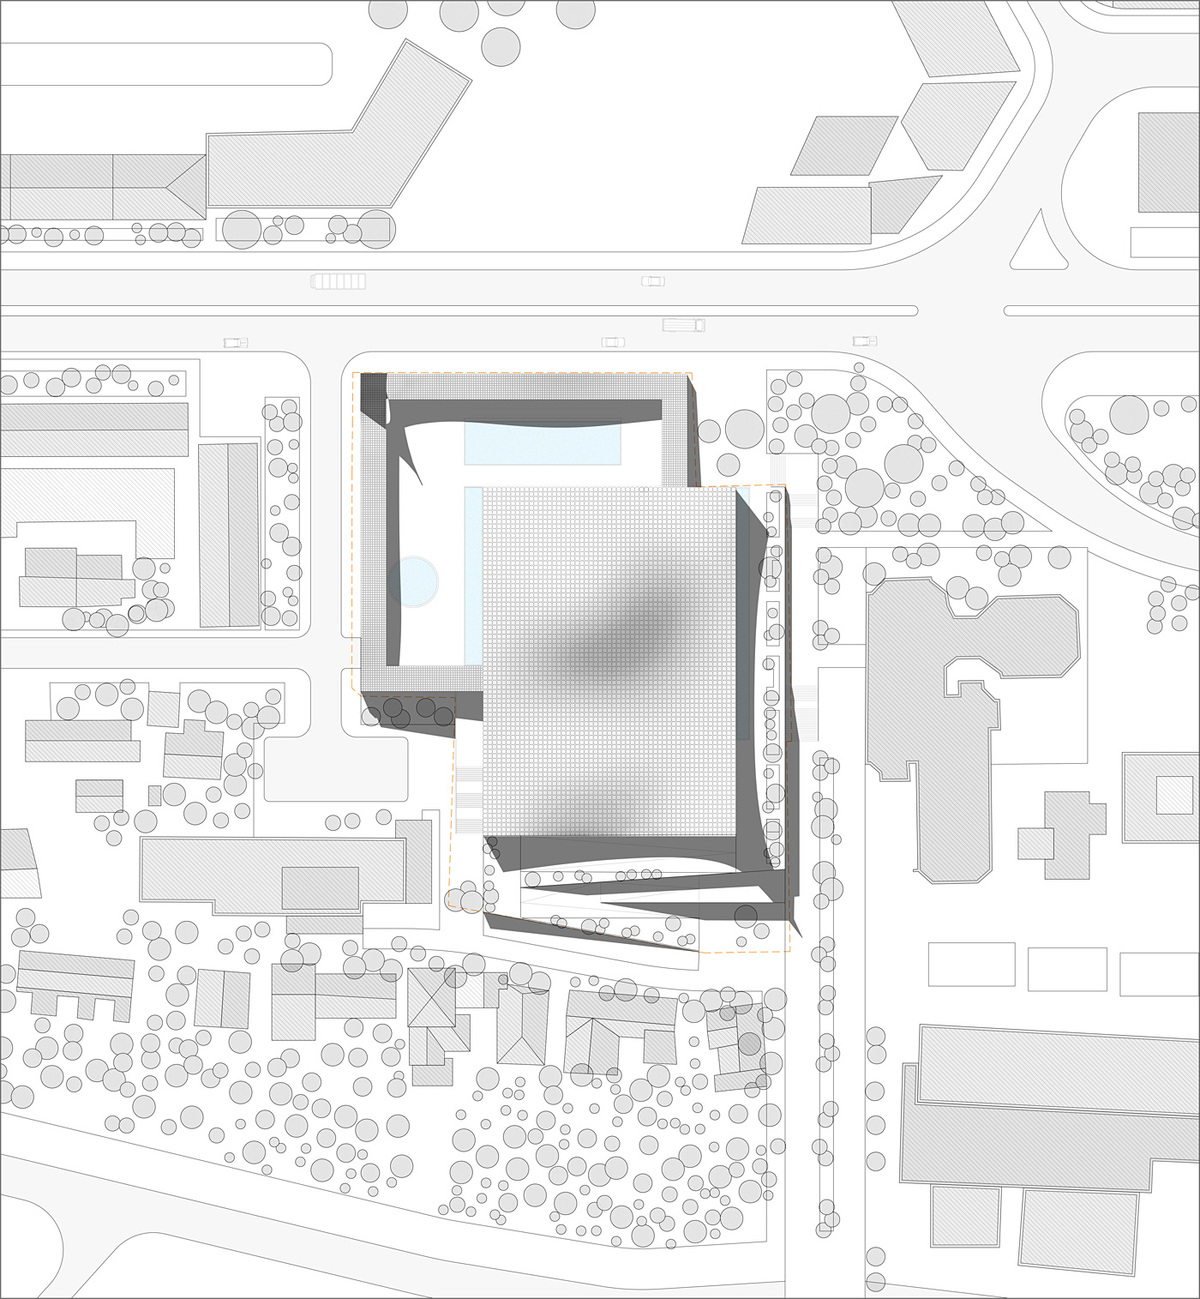 Site plan (Image: Taller 301 and L+CC)